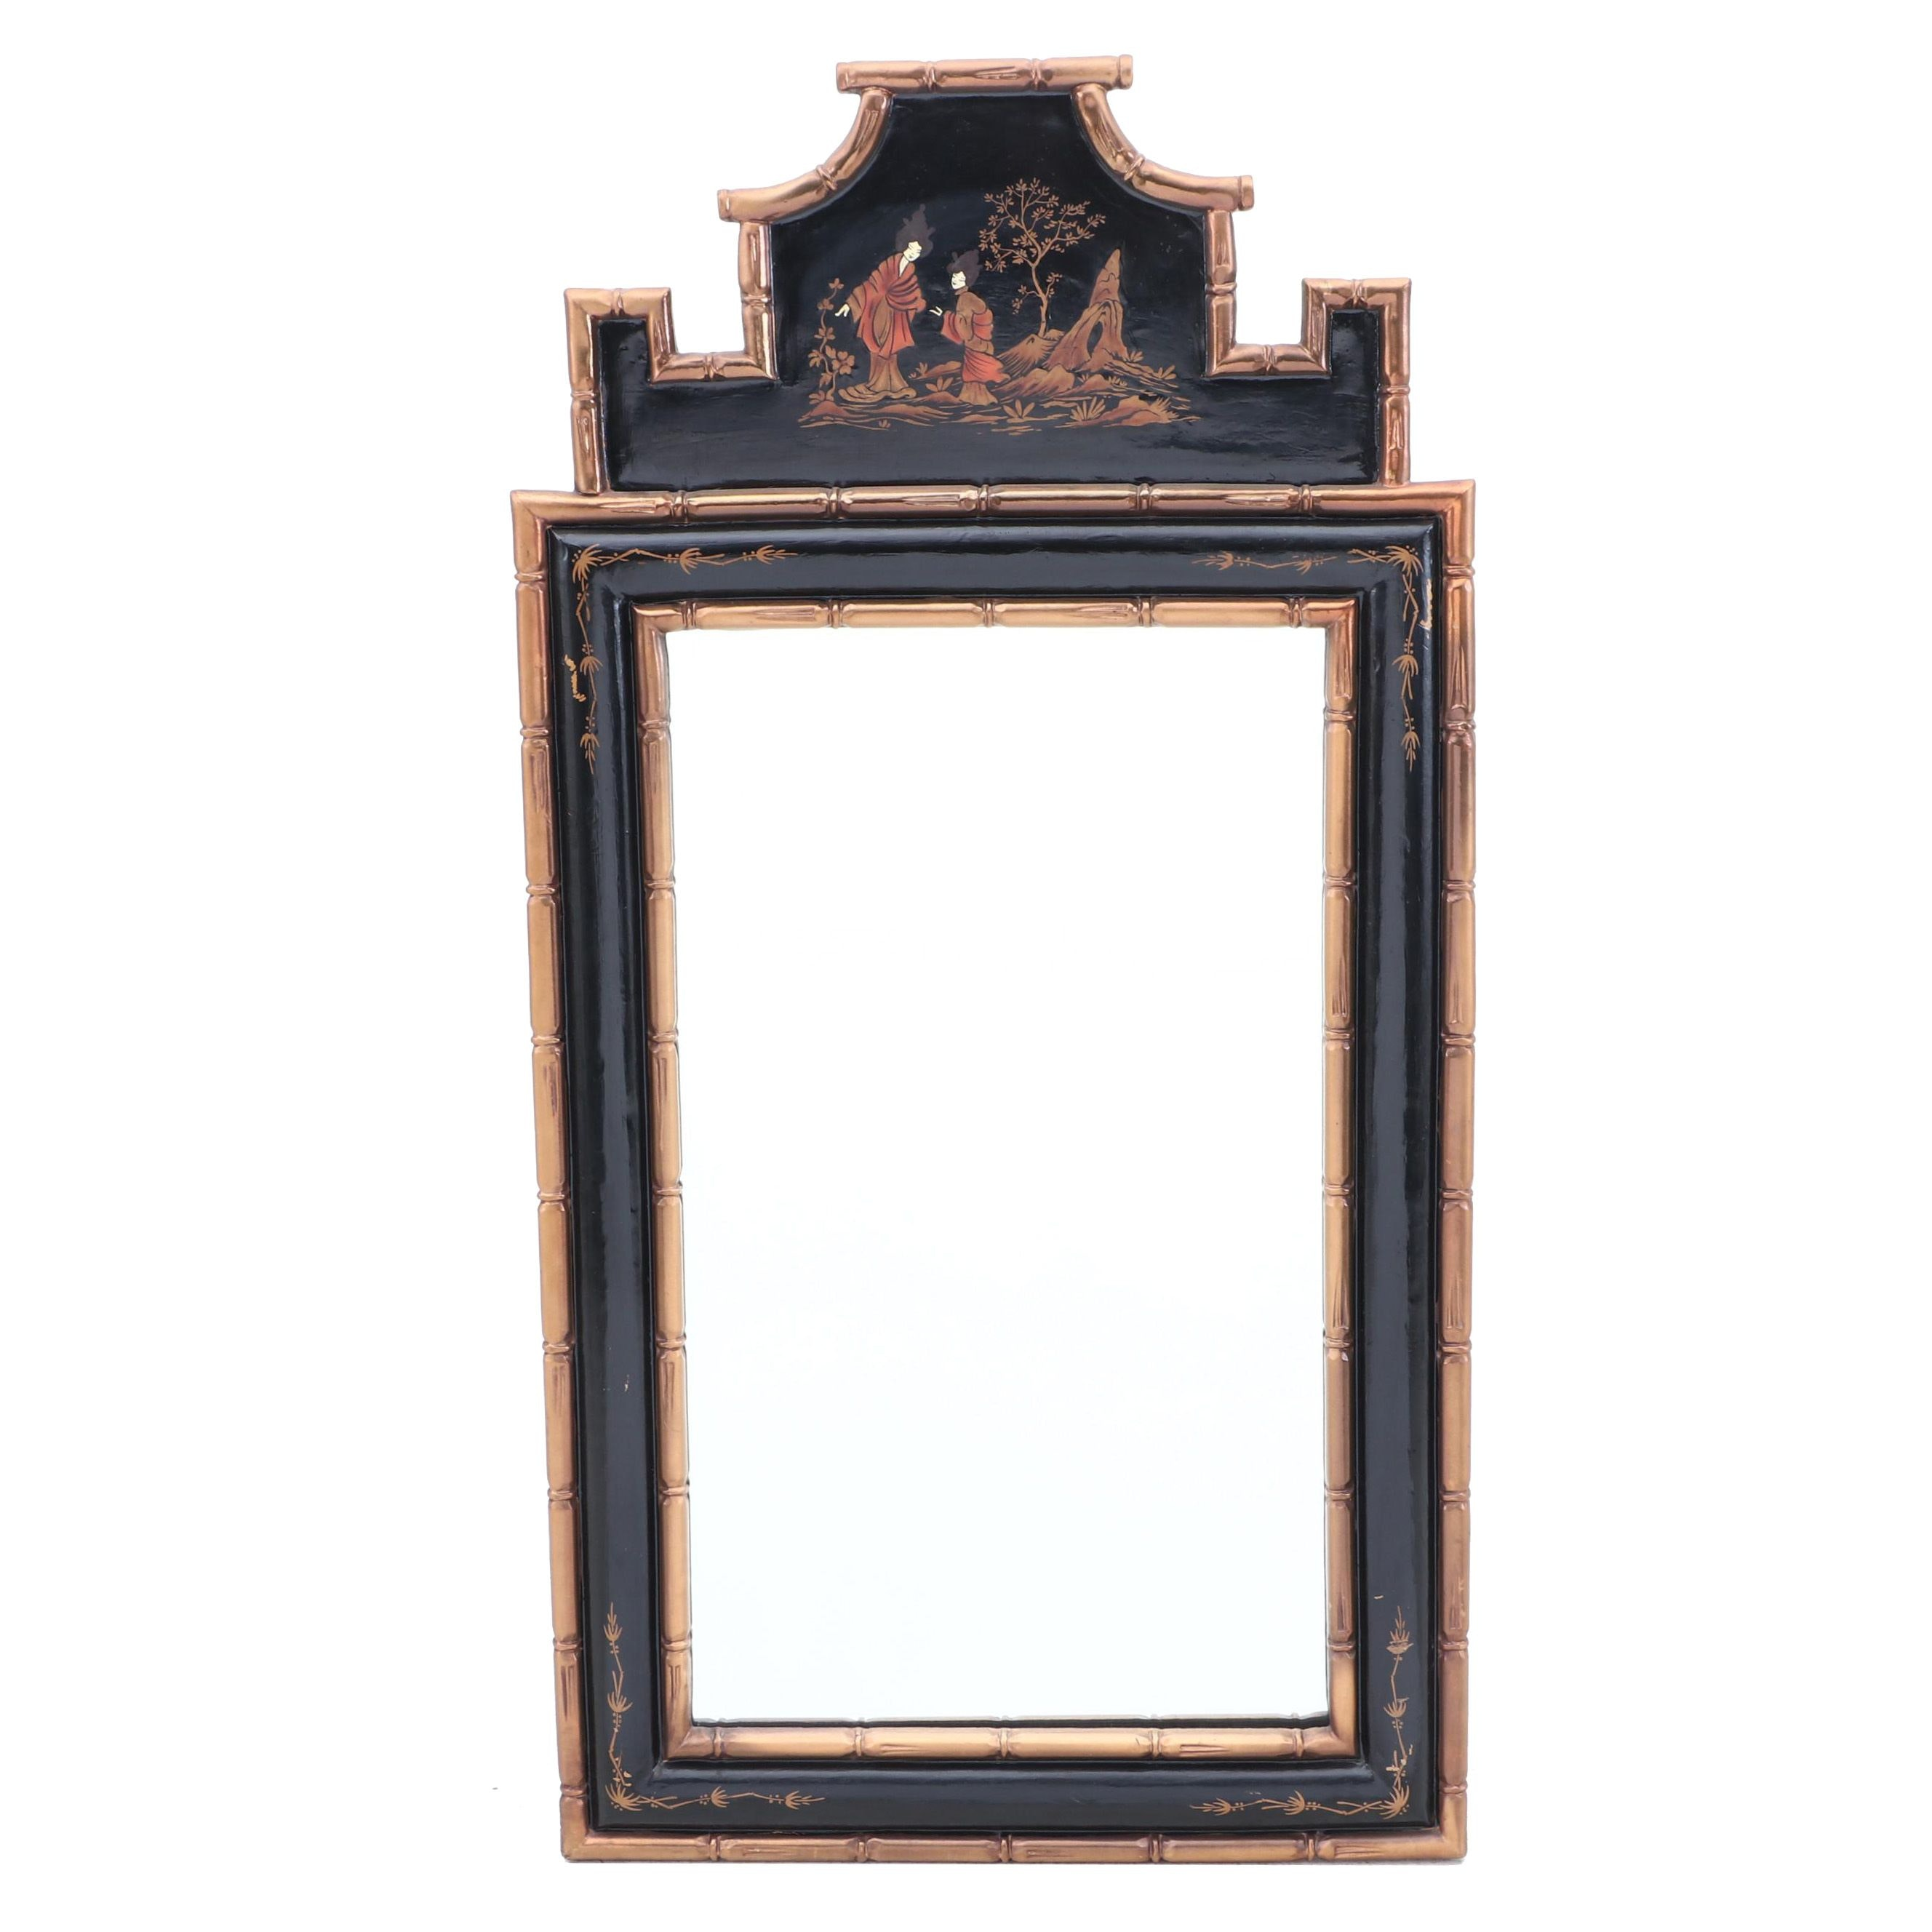 Black Lacquer and Gilt Asian Motif Wall Mirror